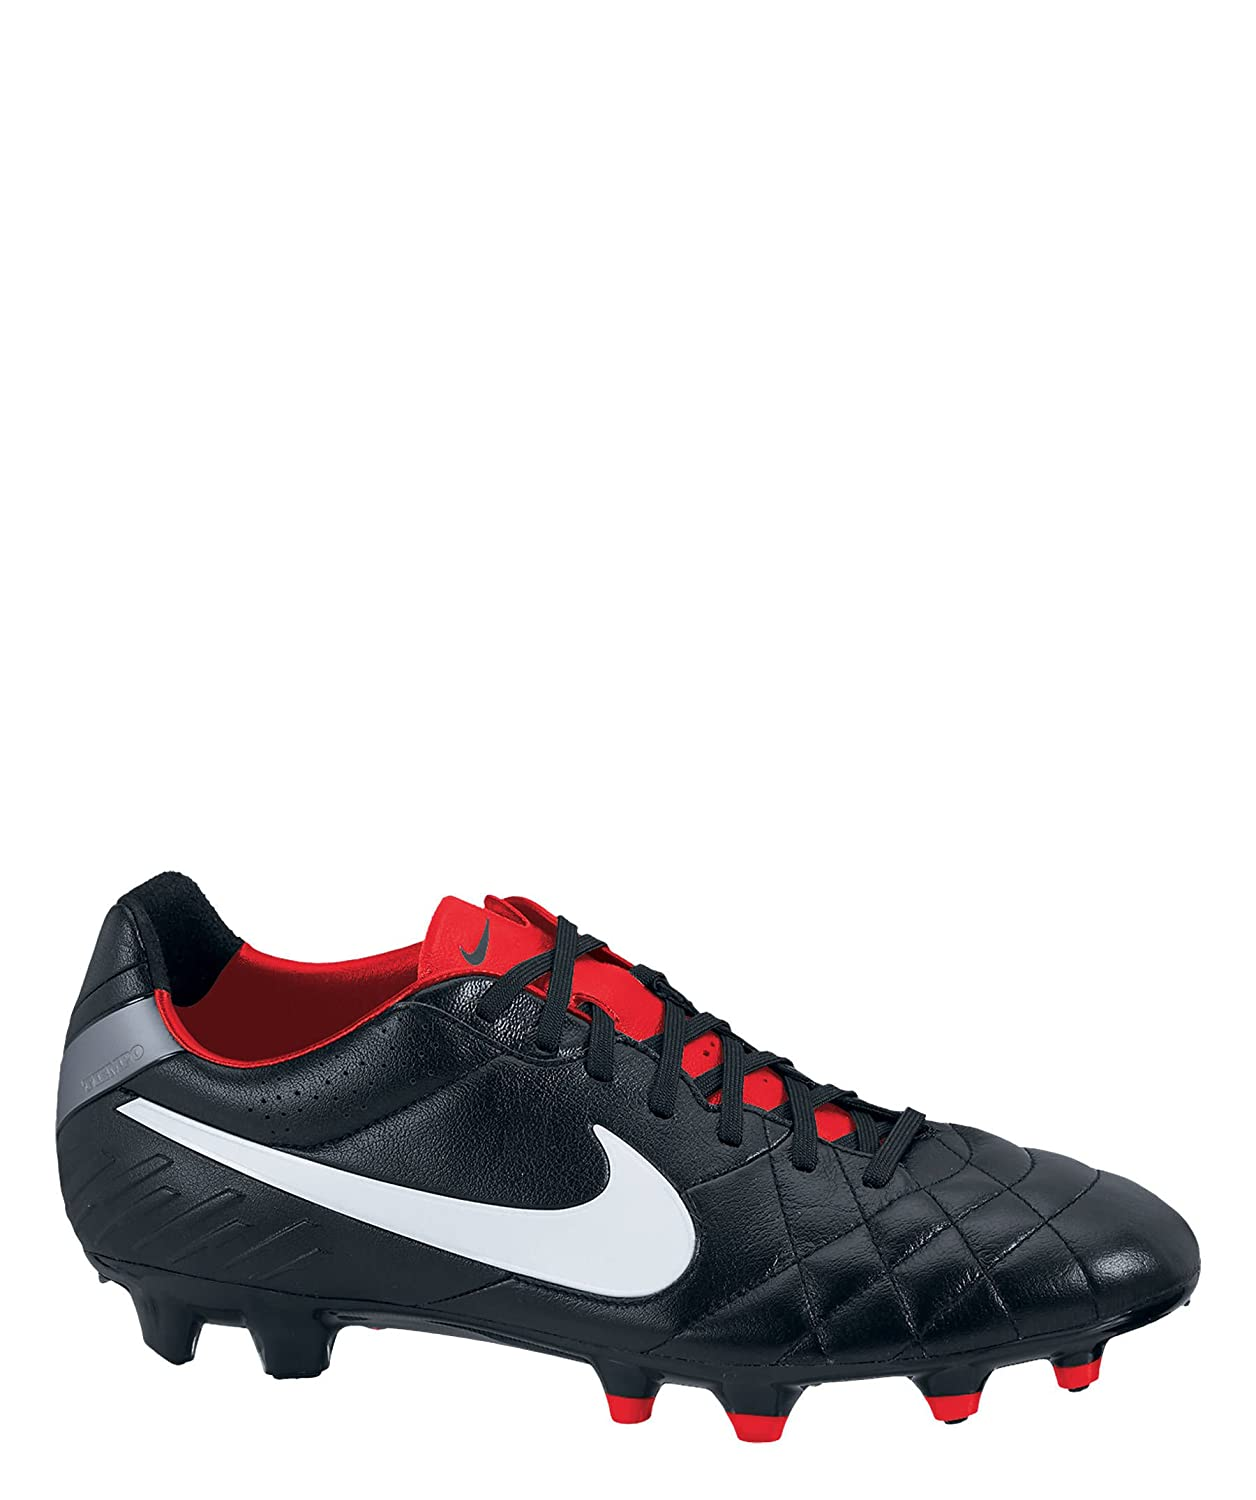 new style eeaad 5ffe1 Nike Tiempo Legend IV FG - (Black/Red/Cool Grey) (6.5)